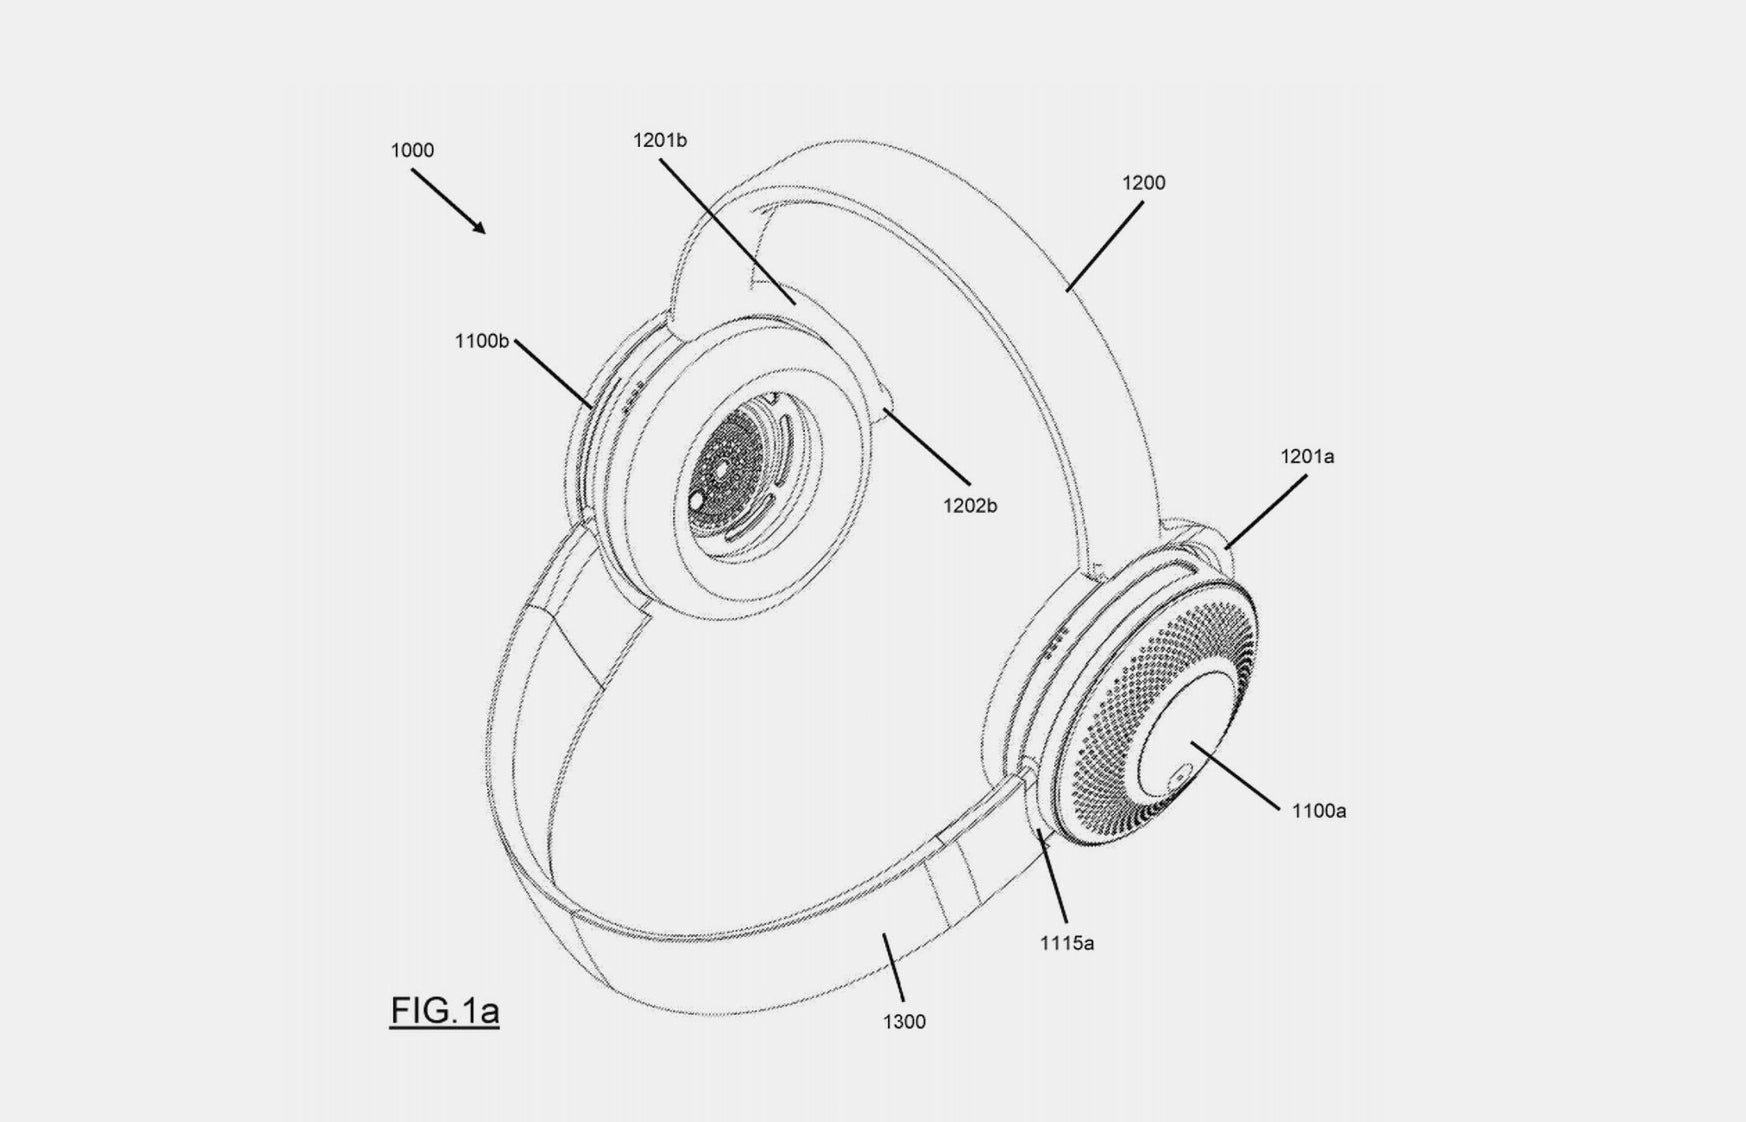 Dyson patents headphones with built-in air purifiers